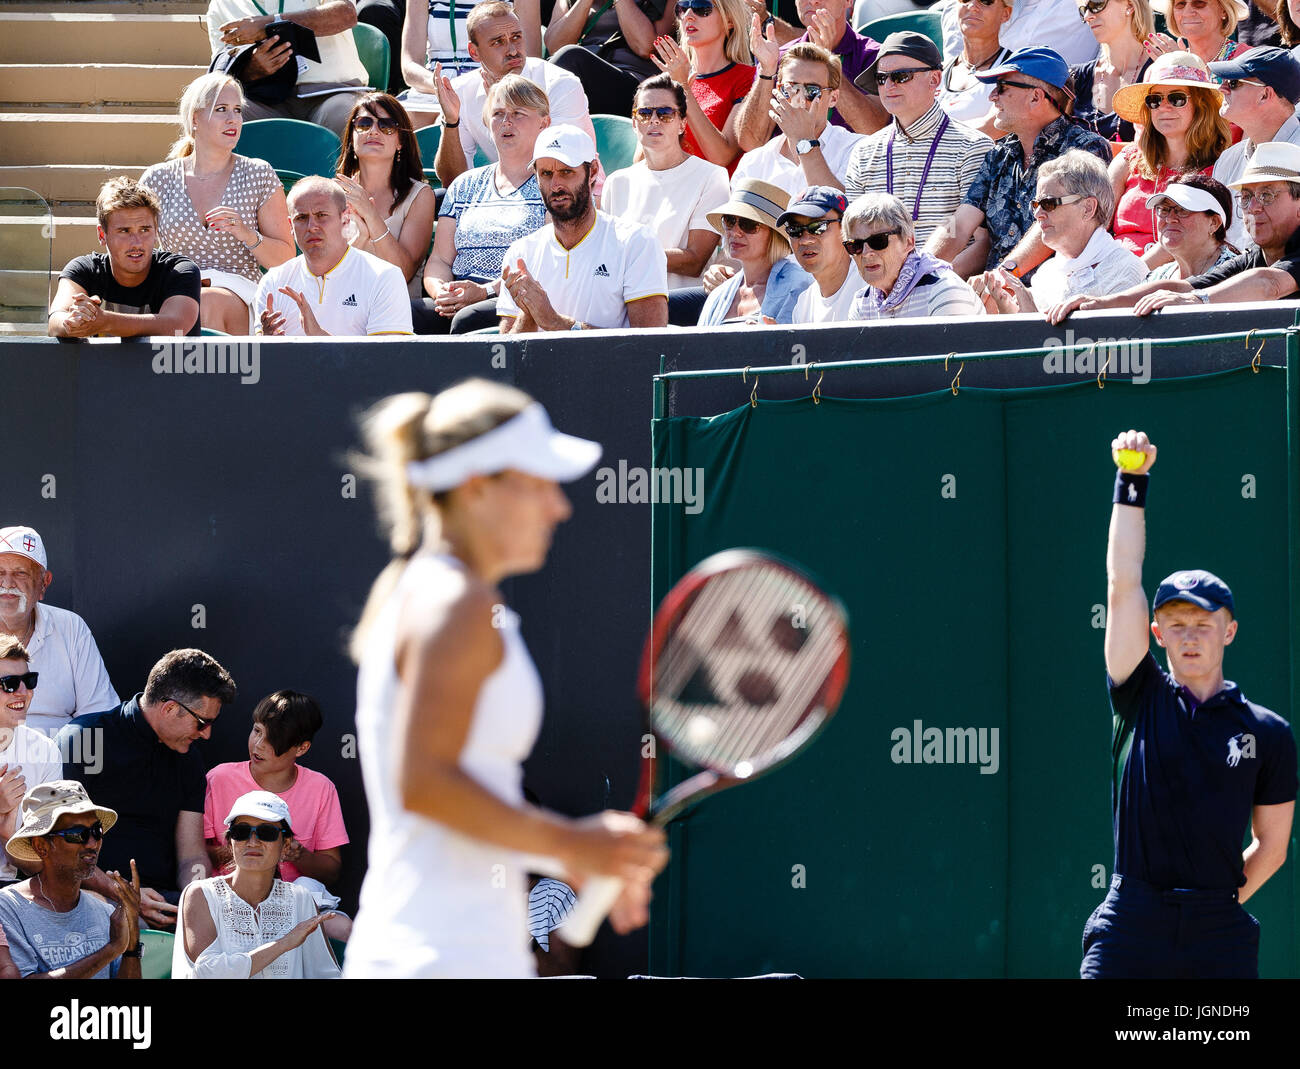 London, UK. 8th July, 2017. Players box of german tennis player Angelique Kerber at the Wimbledon Tennis Championships Stock Photo